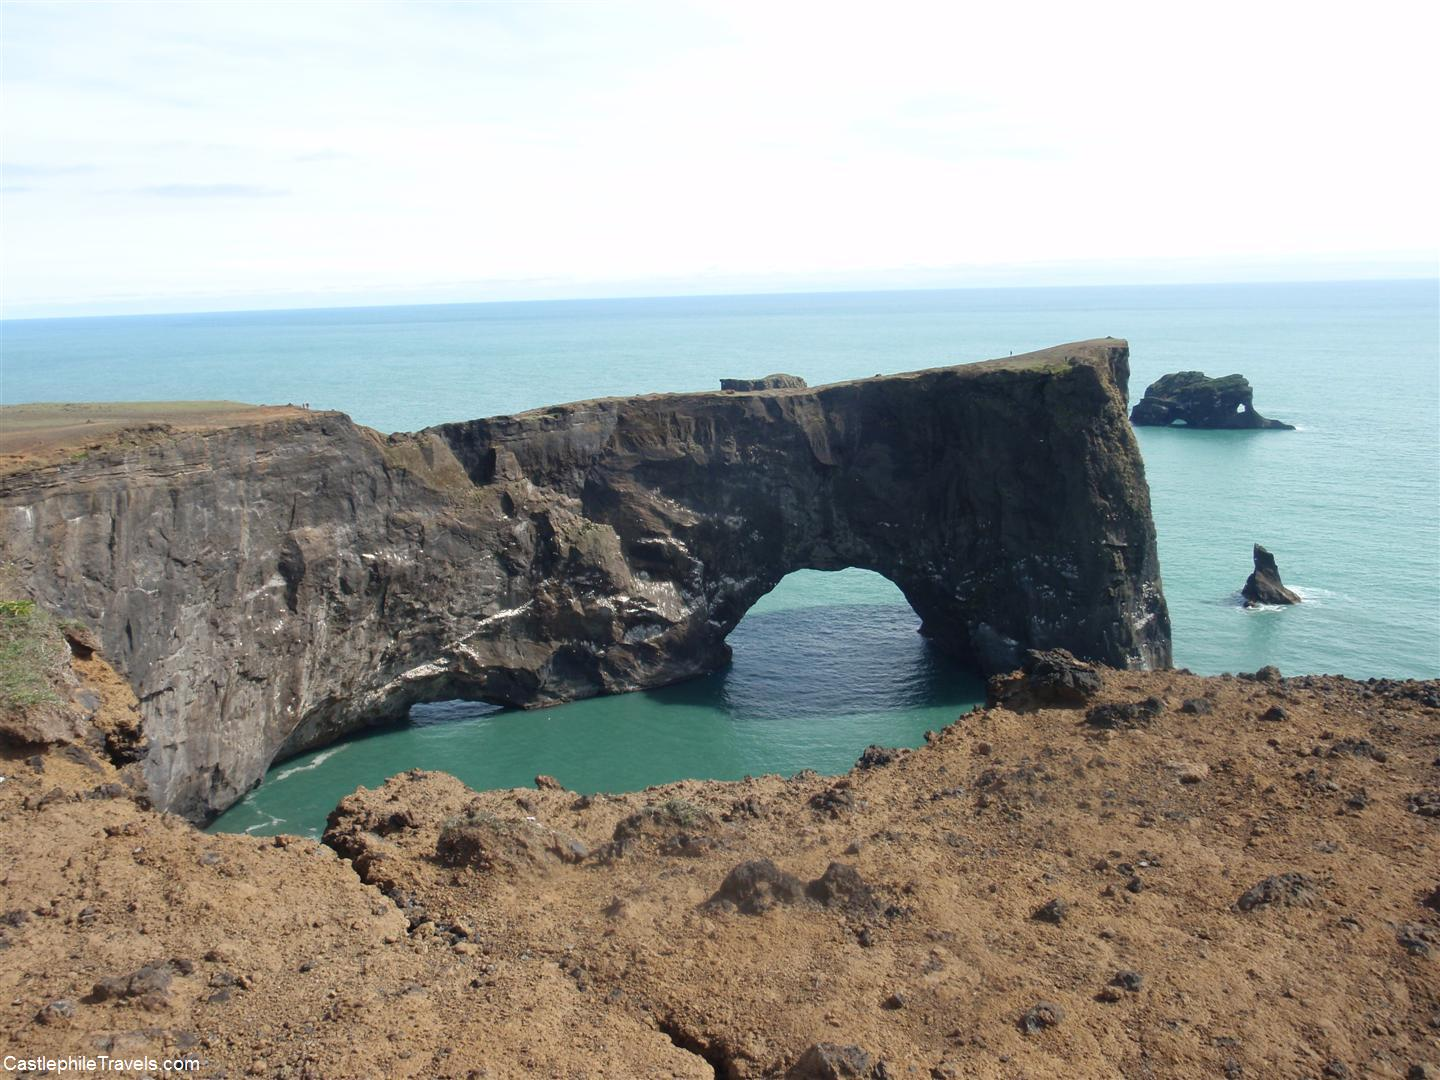 The 'London Bridge' rock formation